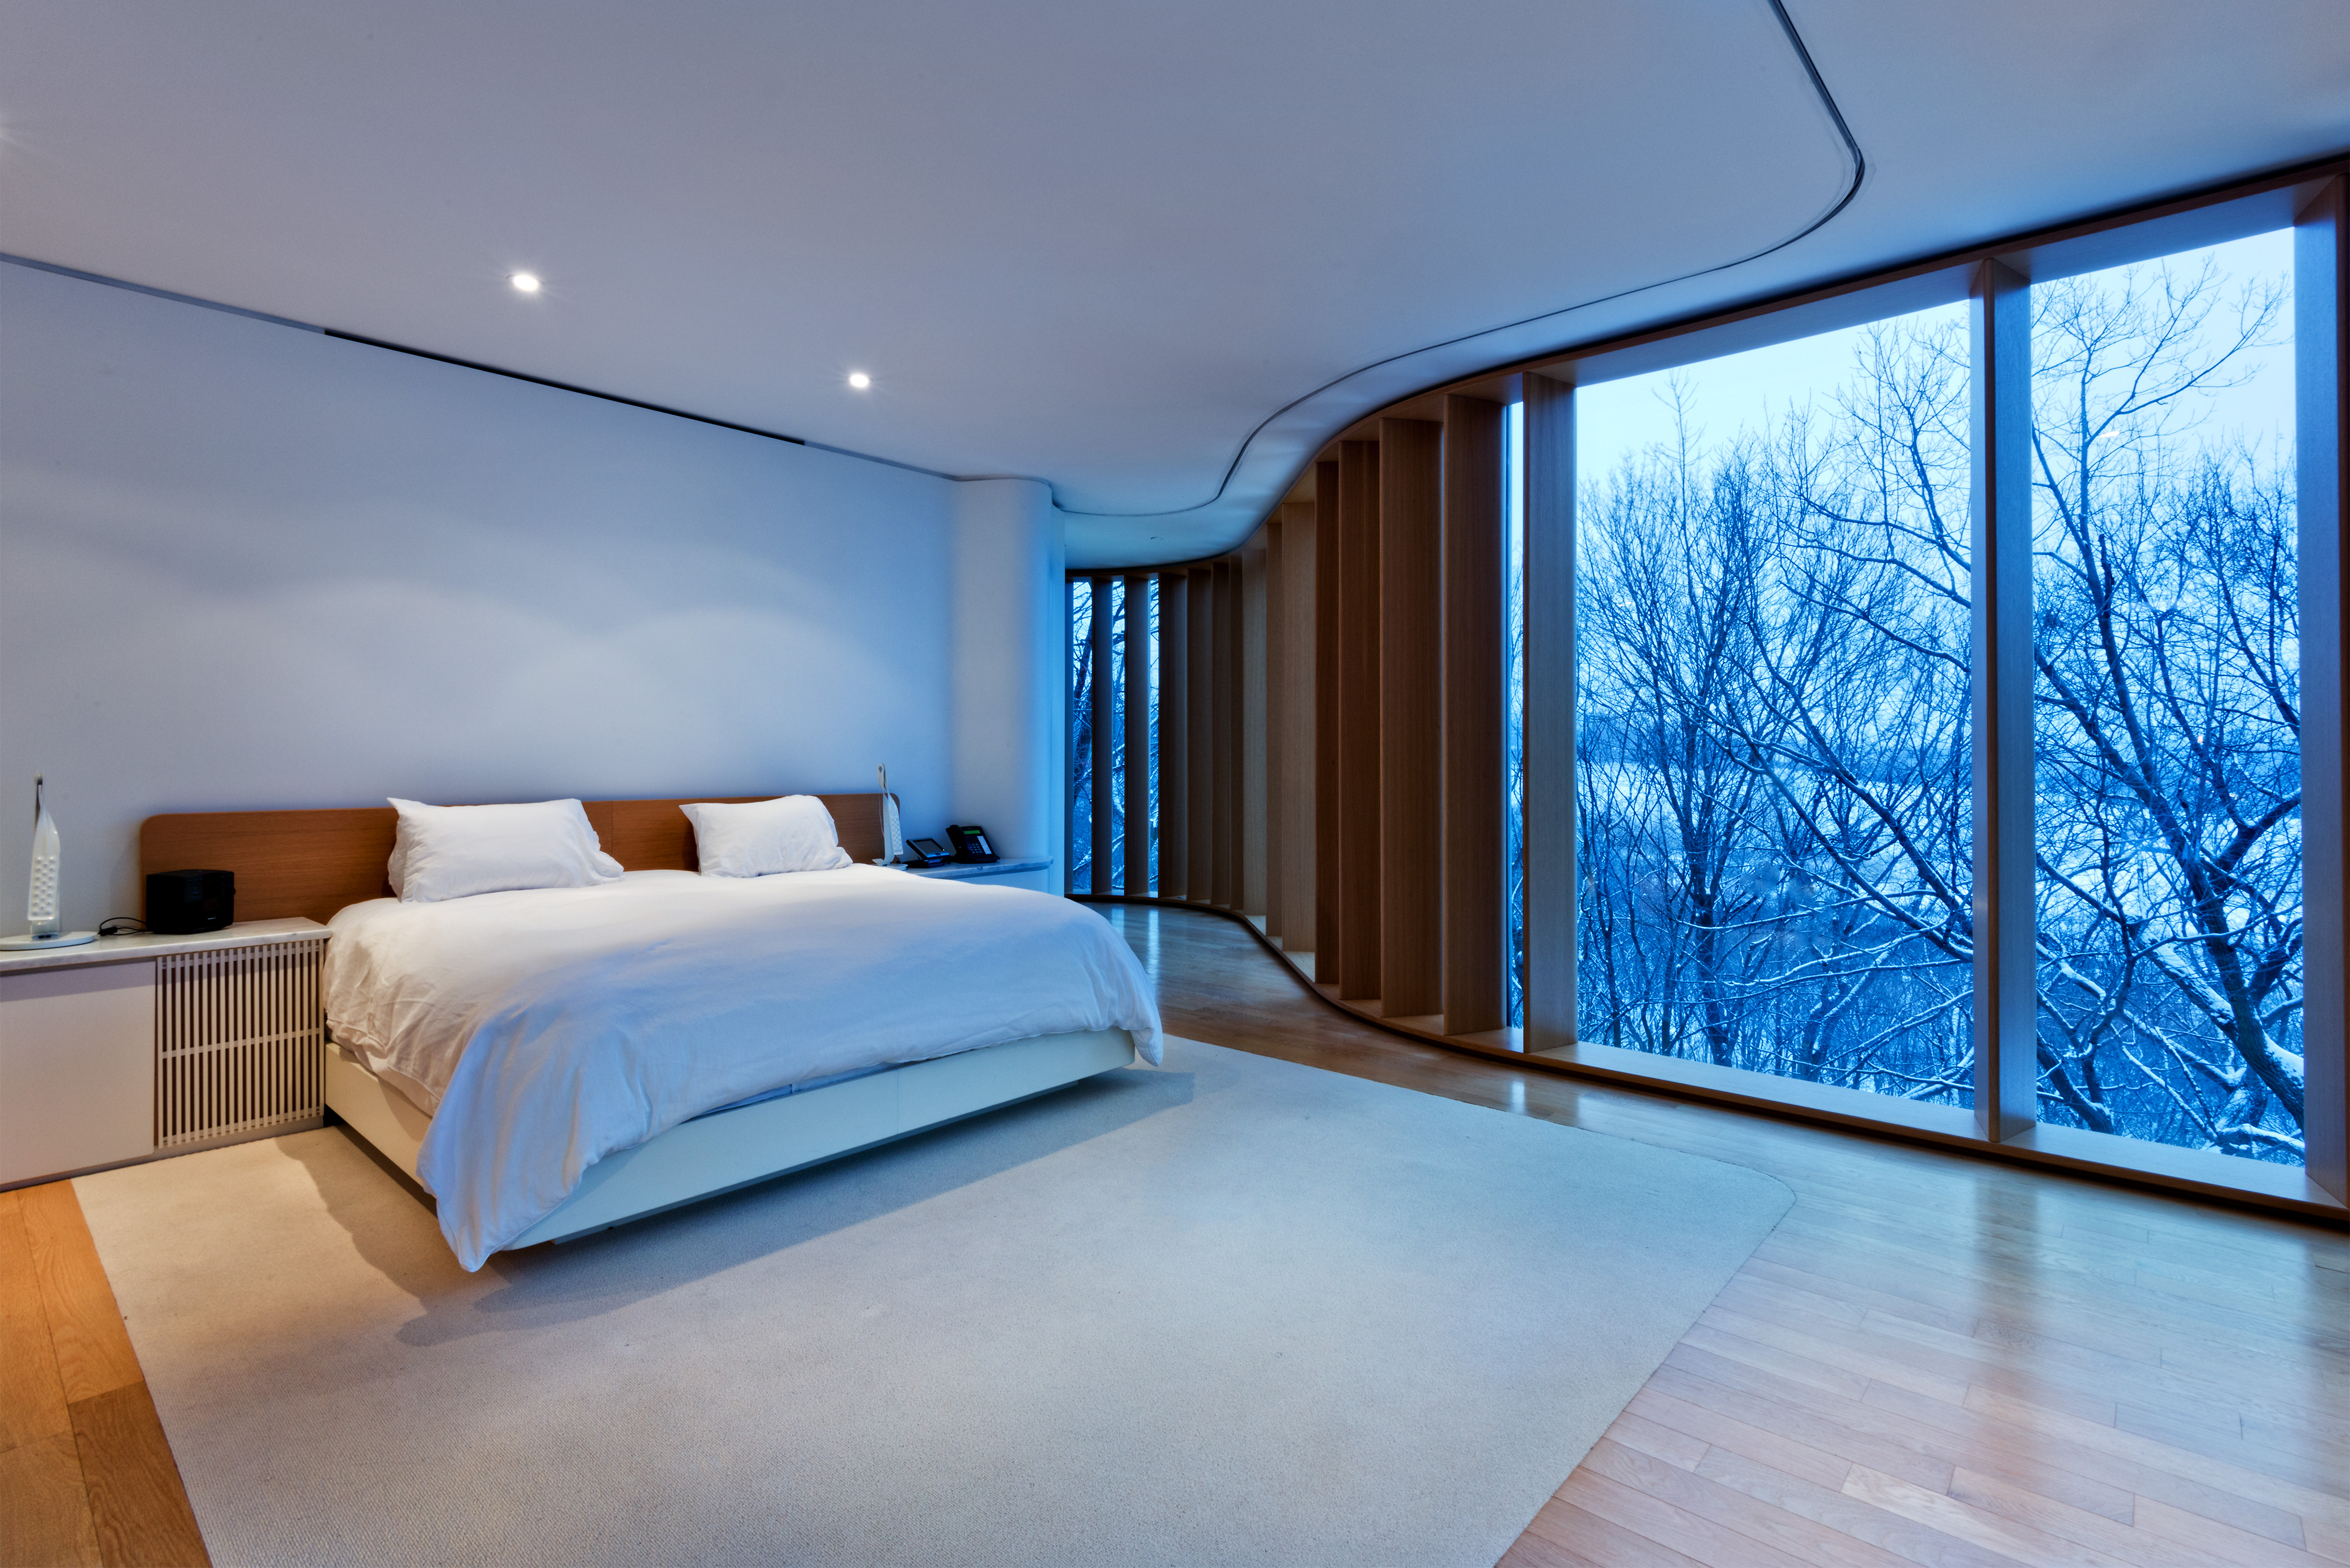 The bedrooms are located on the upper floors